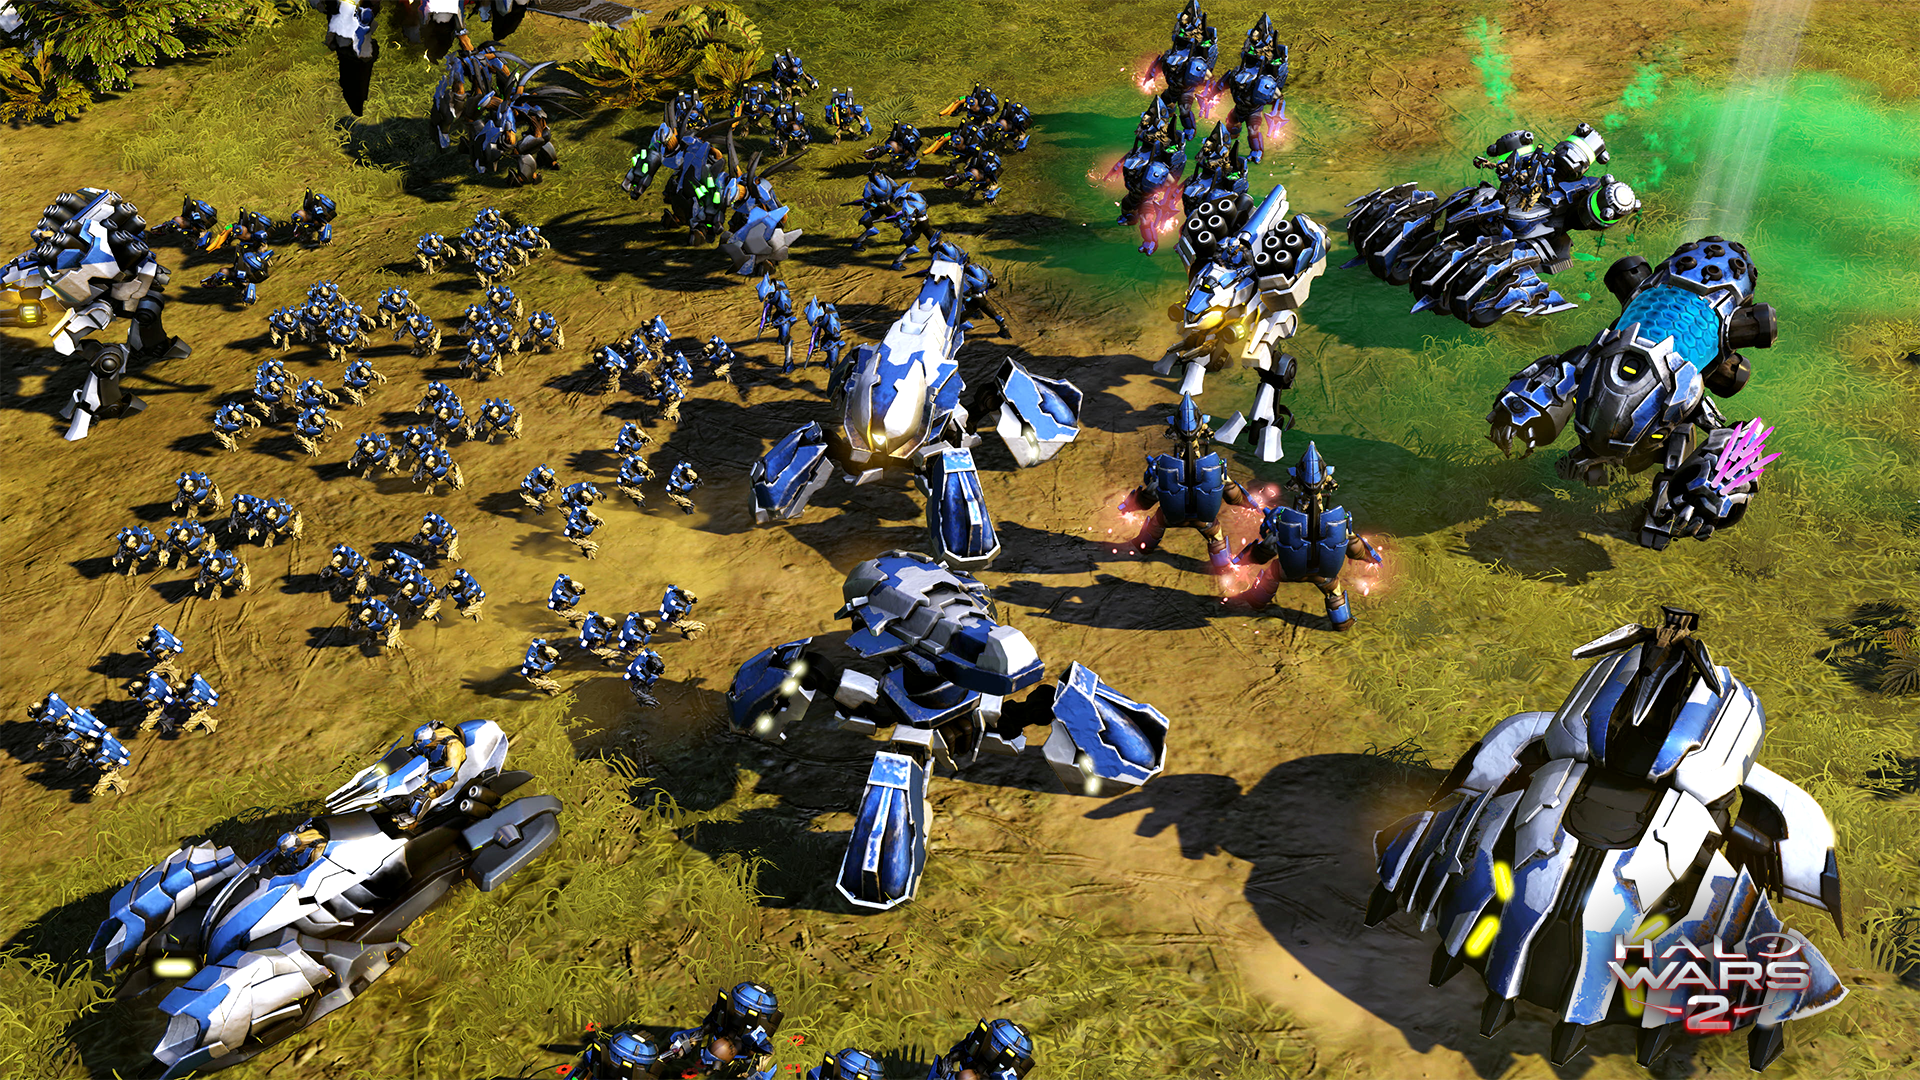 Halo Wars 2 Yapyap THE DESTROYER Assemble the Grunts